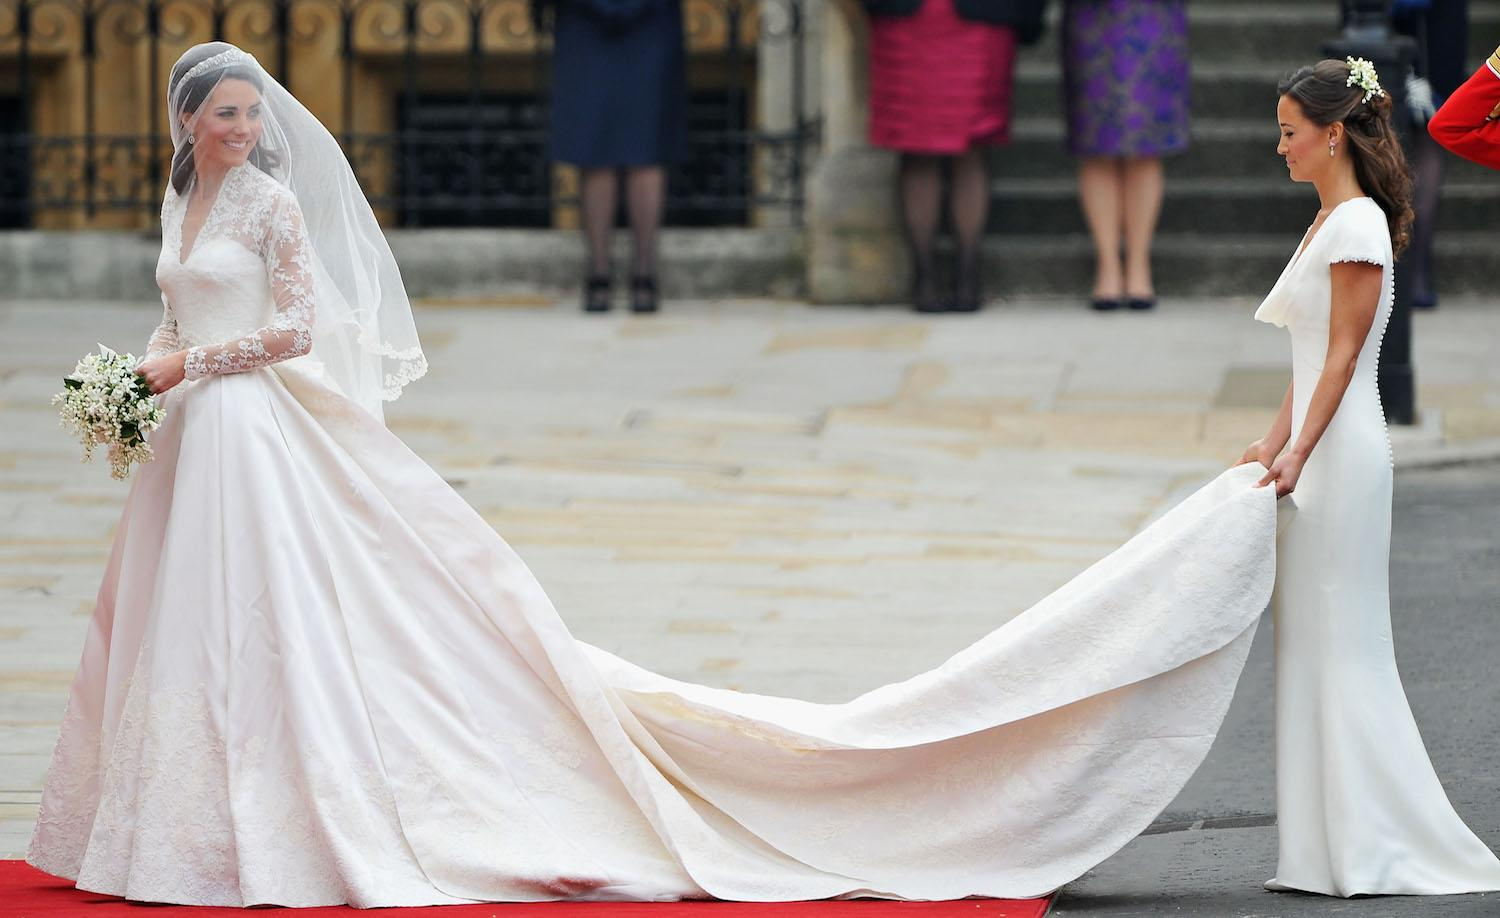 Catherine Middleton Arrive To Attend The Royal Wedding Of Prince William At Westminster